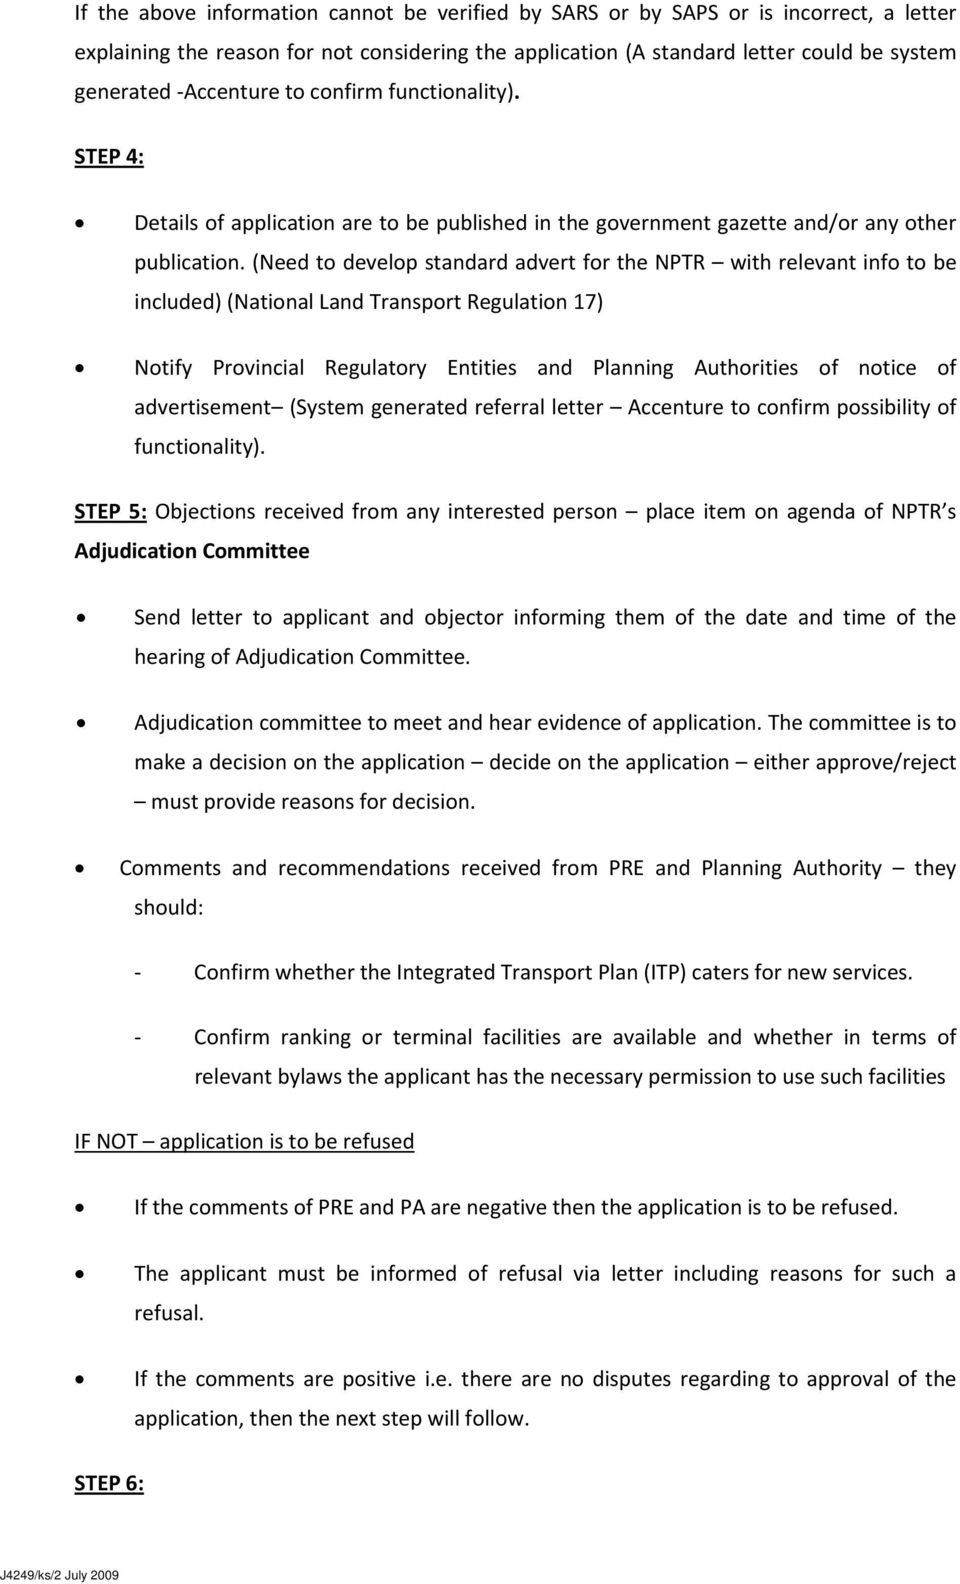 (Need to develop standard advert for the NPTR with relevant info to be included) (National Land Transport Regulation 17) Notify Provincial Regulatory Entities and Planning Authorities of notice of